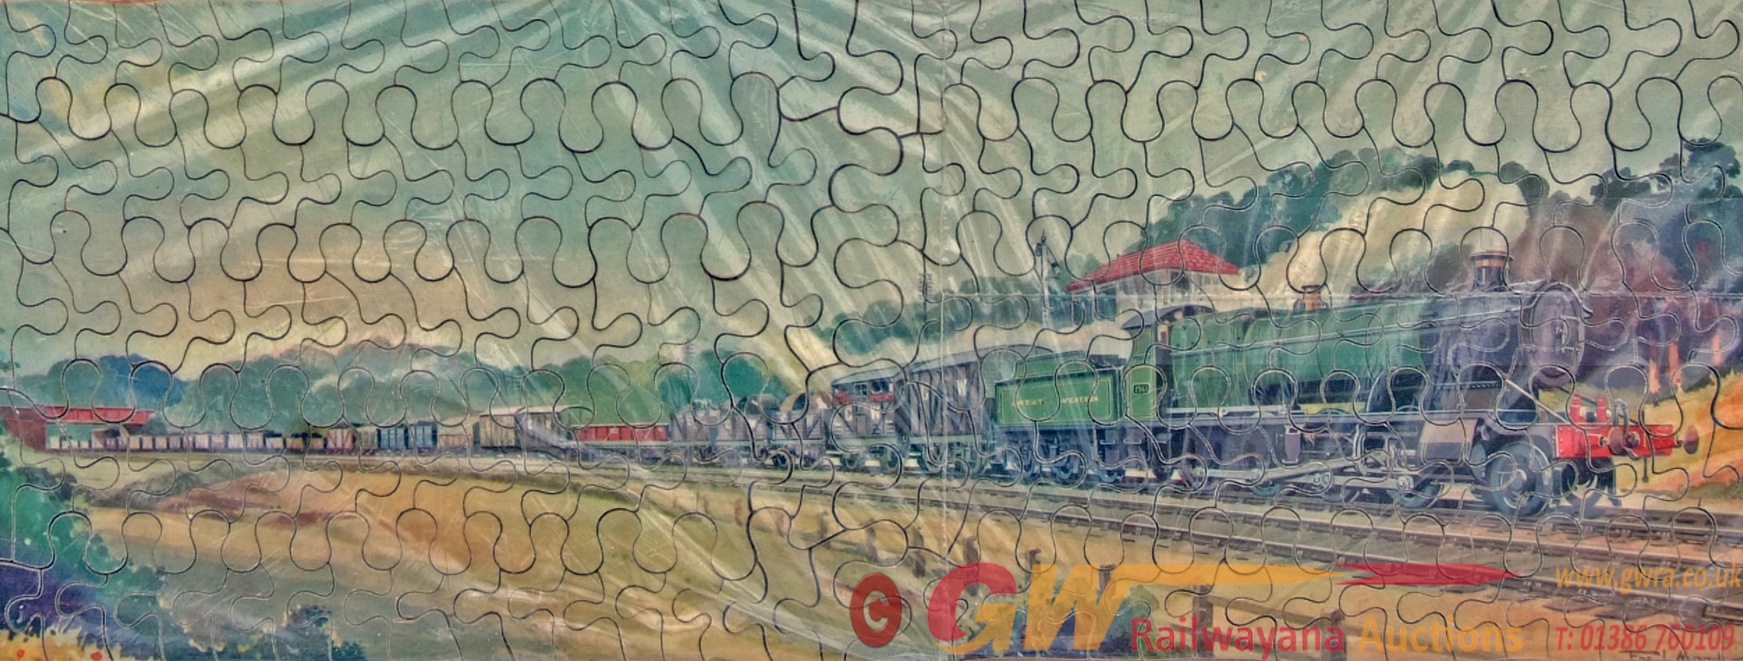 GWR Jigsaw 'The Freight Train' Complete With A